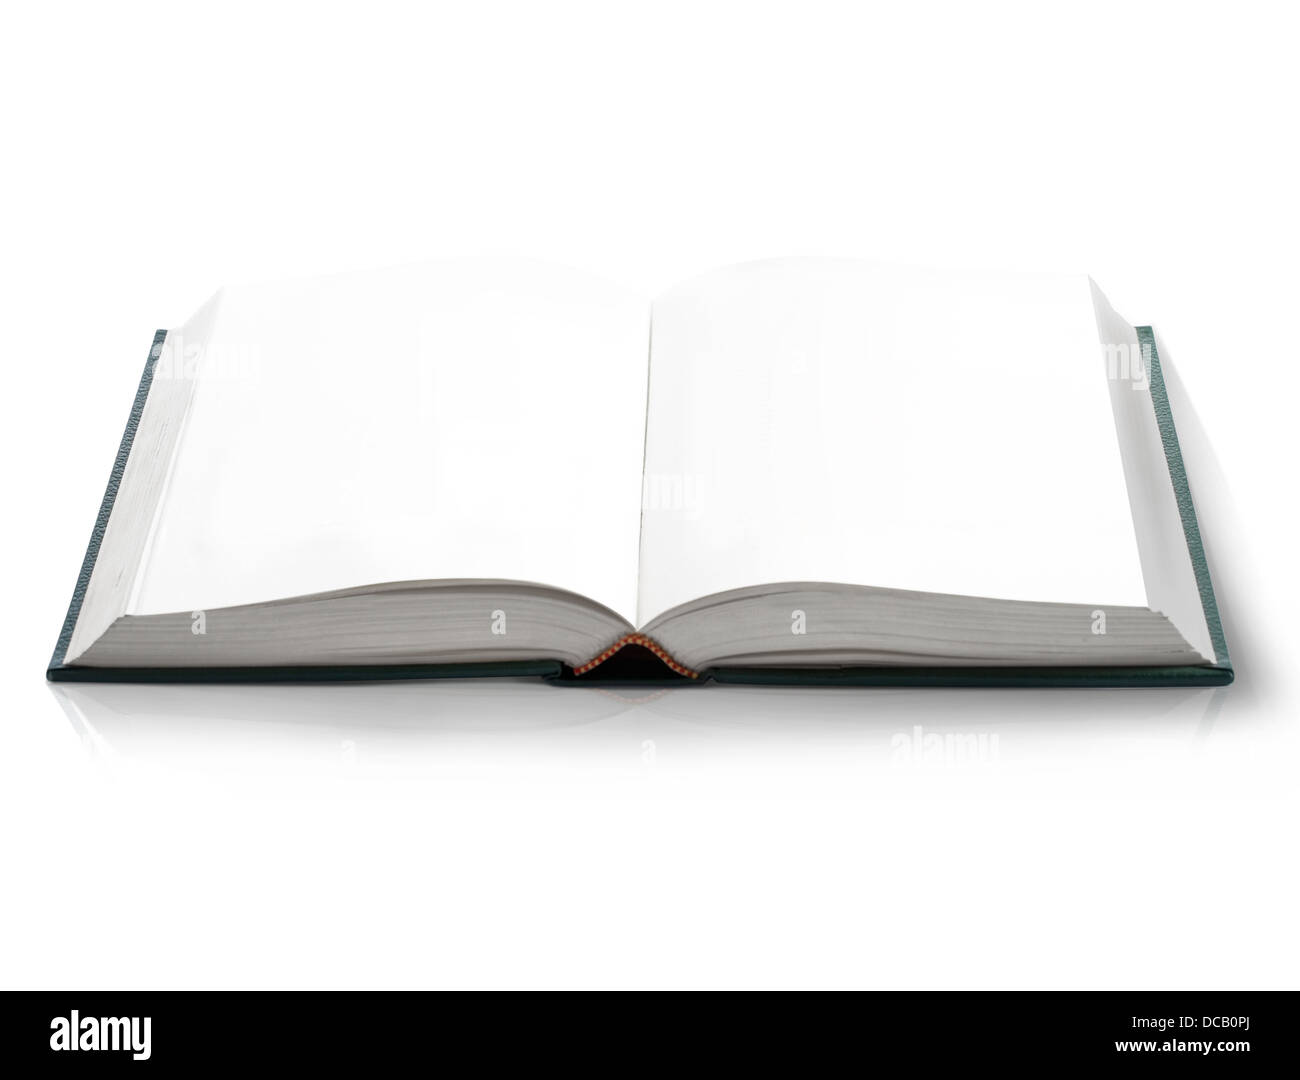 hard cover open book with empty blank pages viewed by bird eye